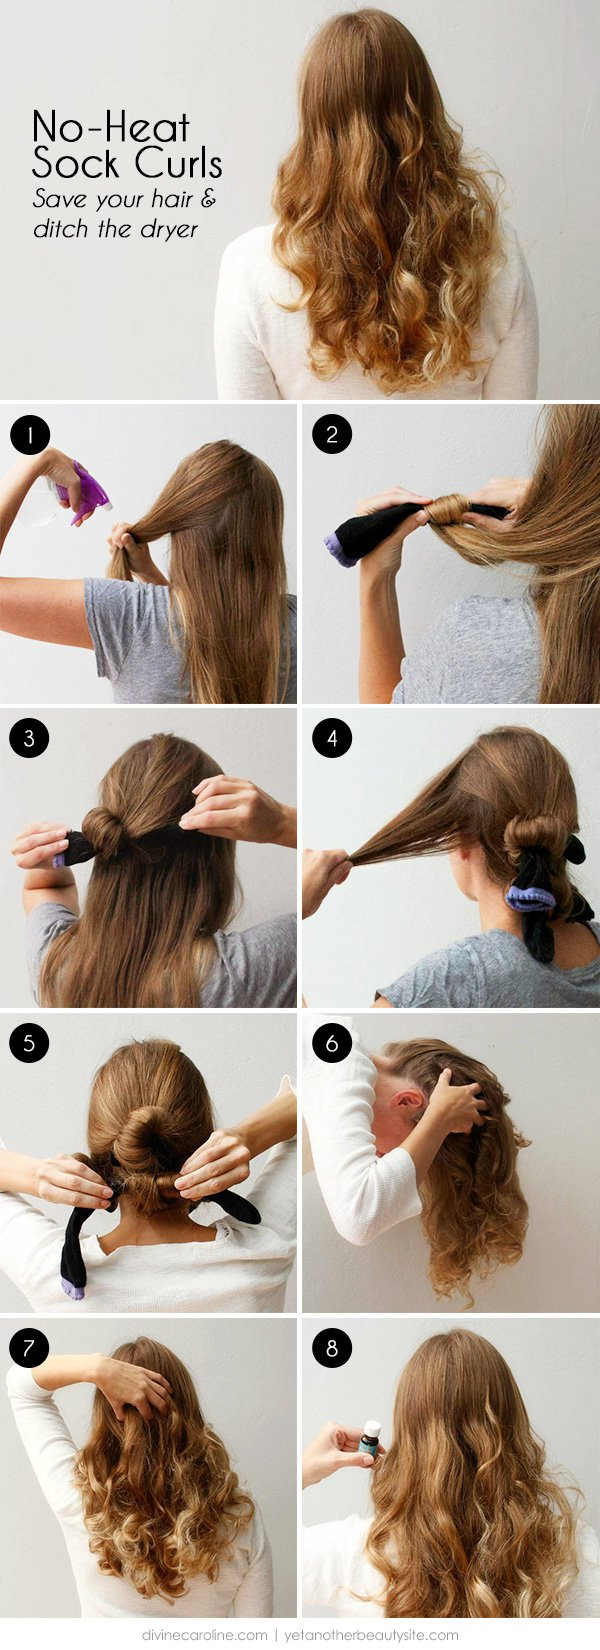 12 Easy Ways To Get No Heat Waves Pretty Designs